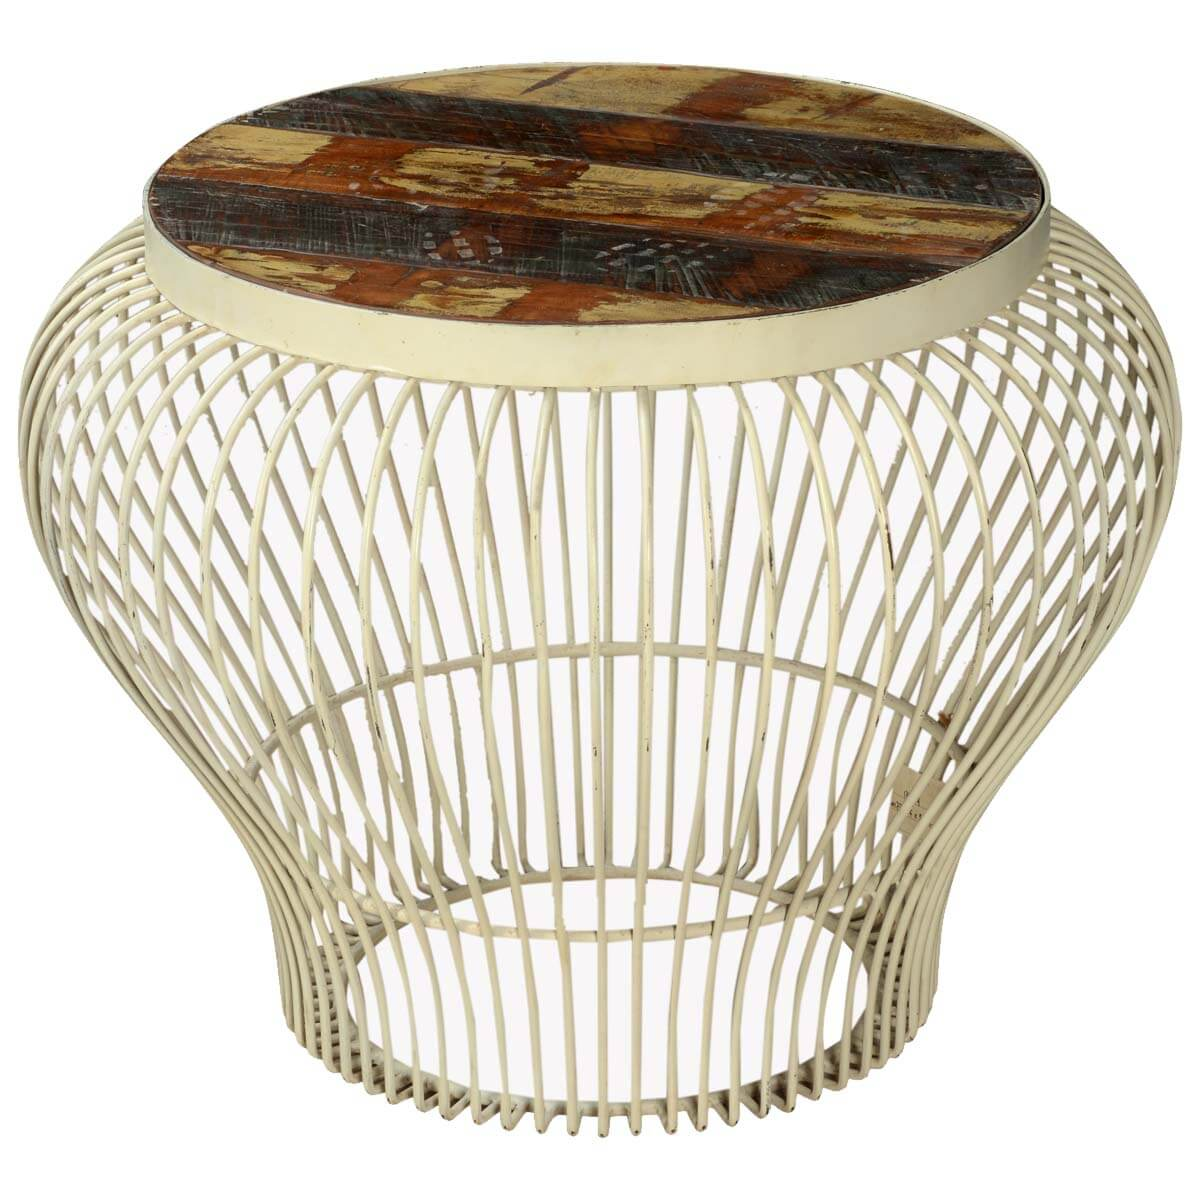 Light Bulb Shaped Reclaimed Wood & Iron Round Accent Table